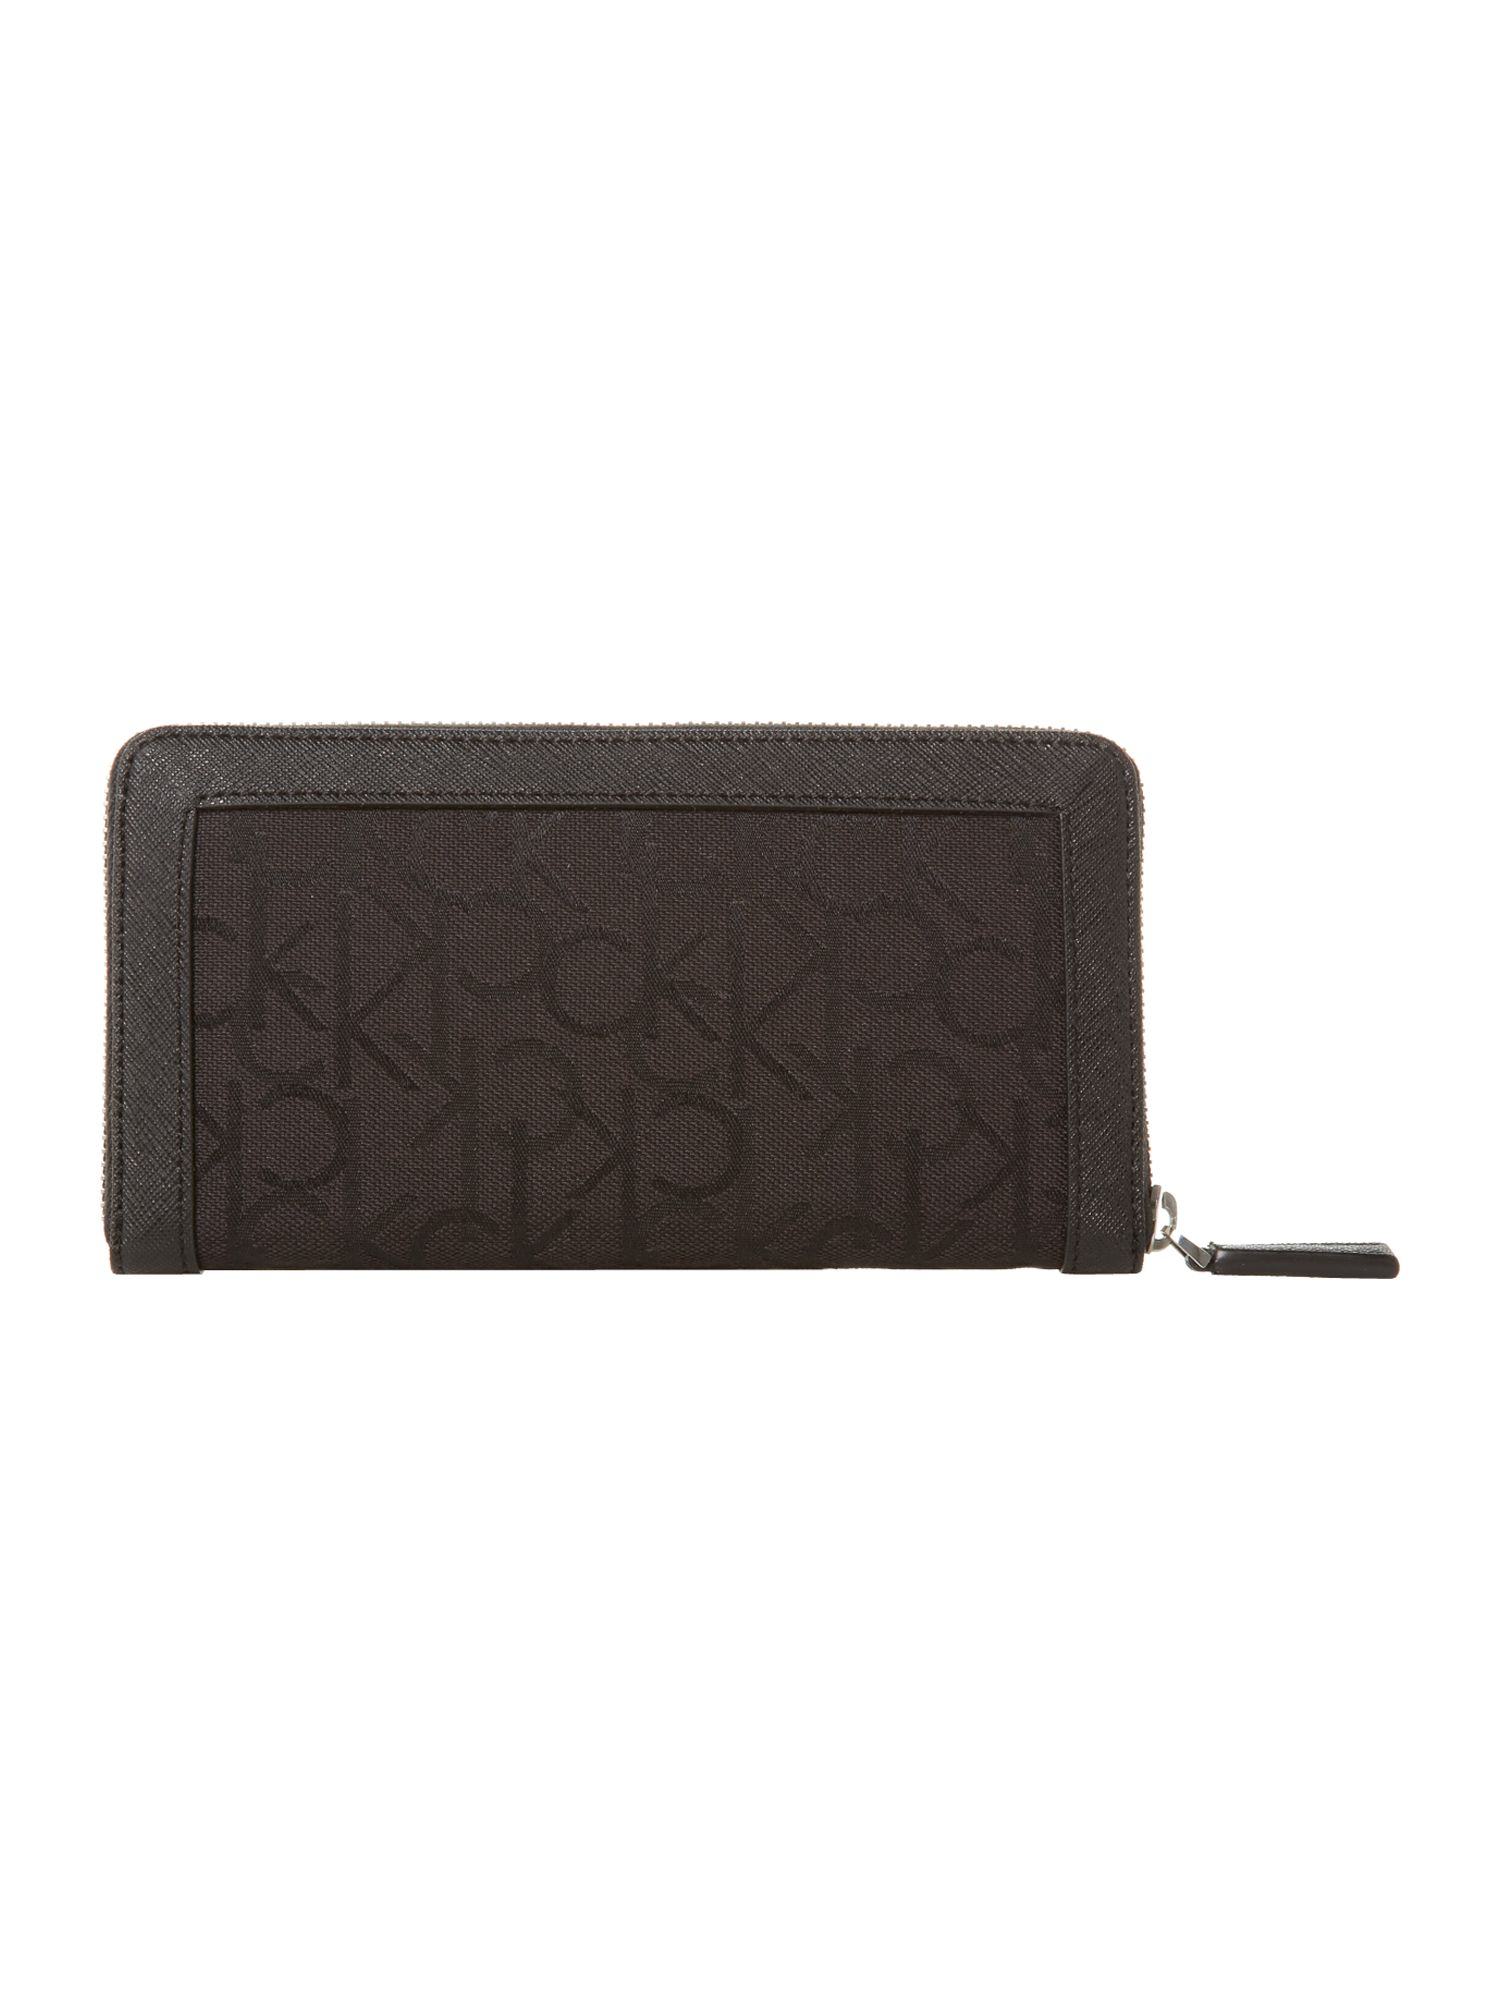 Jaquard logo black large zip around purse